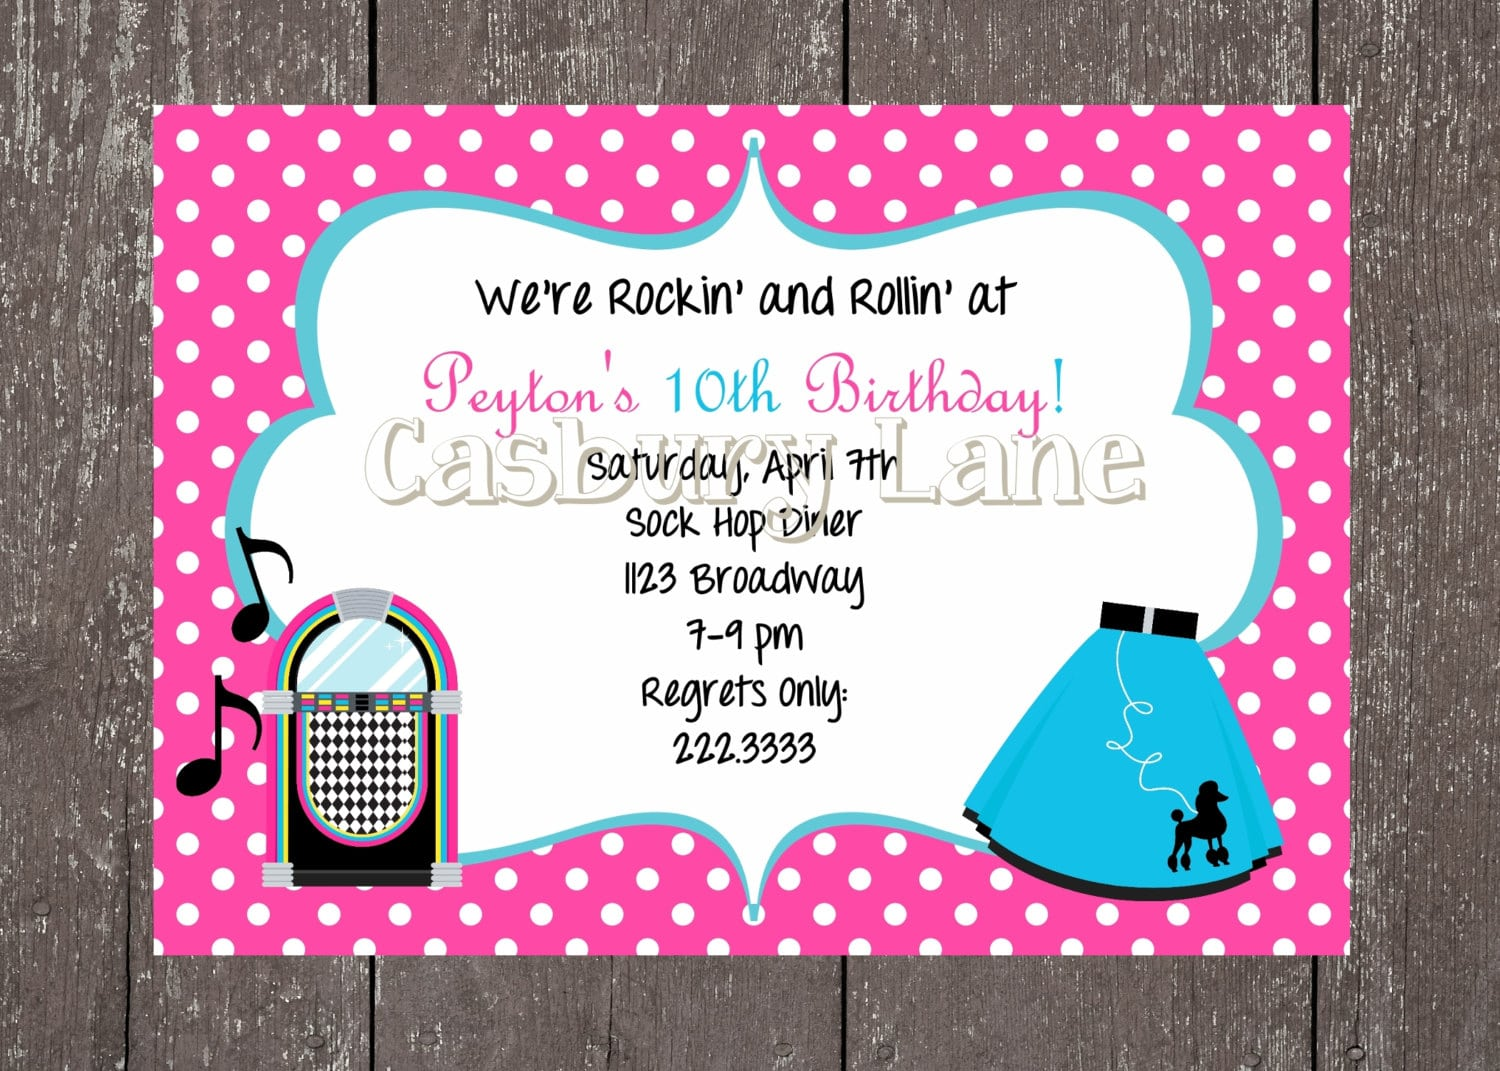 50S Themed Invitations | southernsoulblog.com